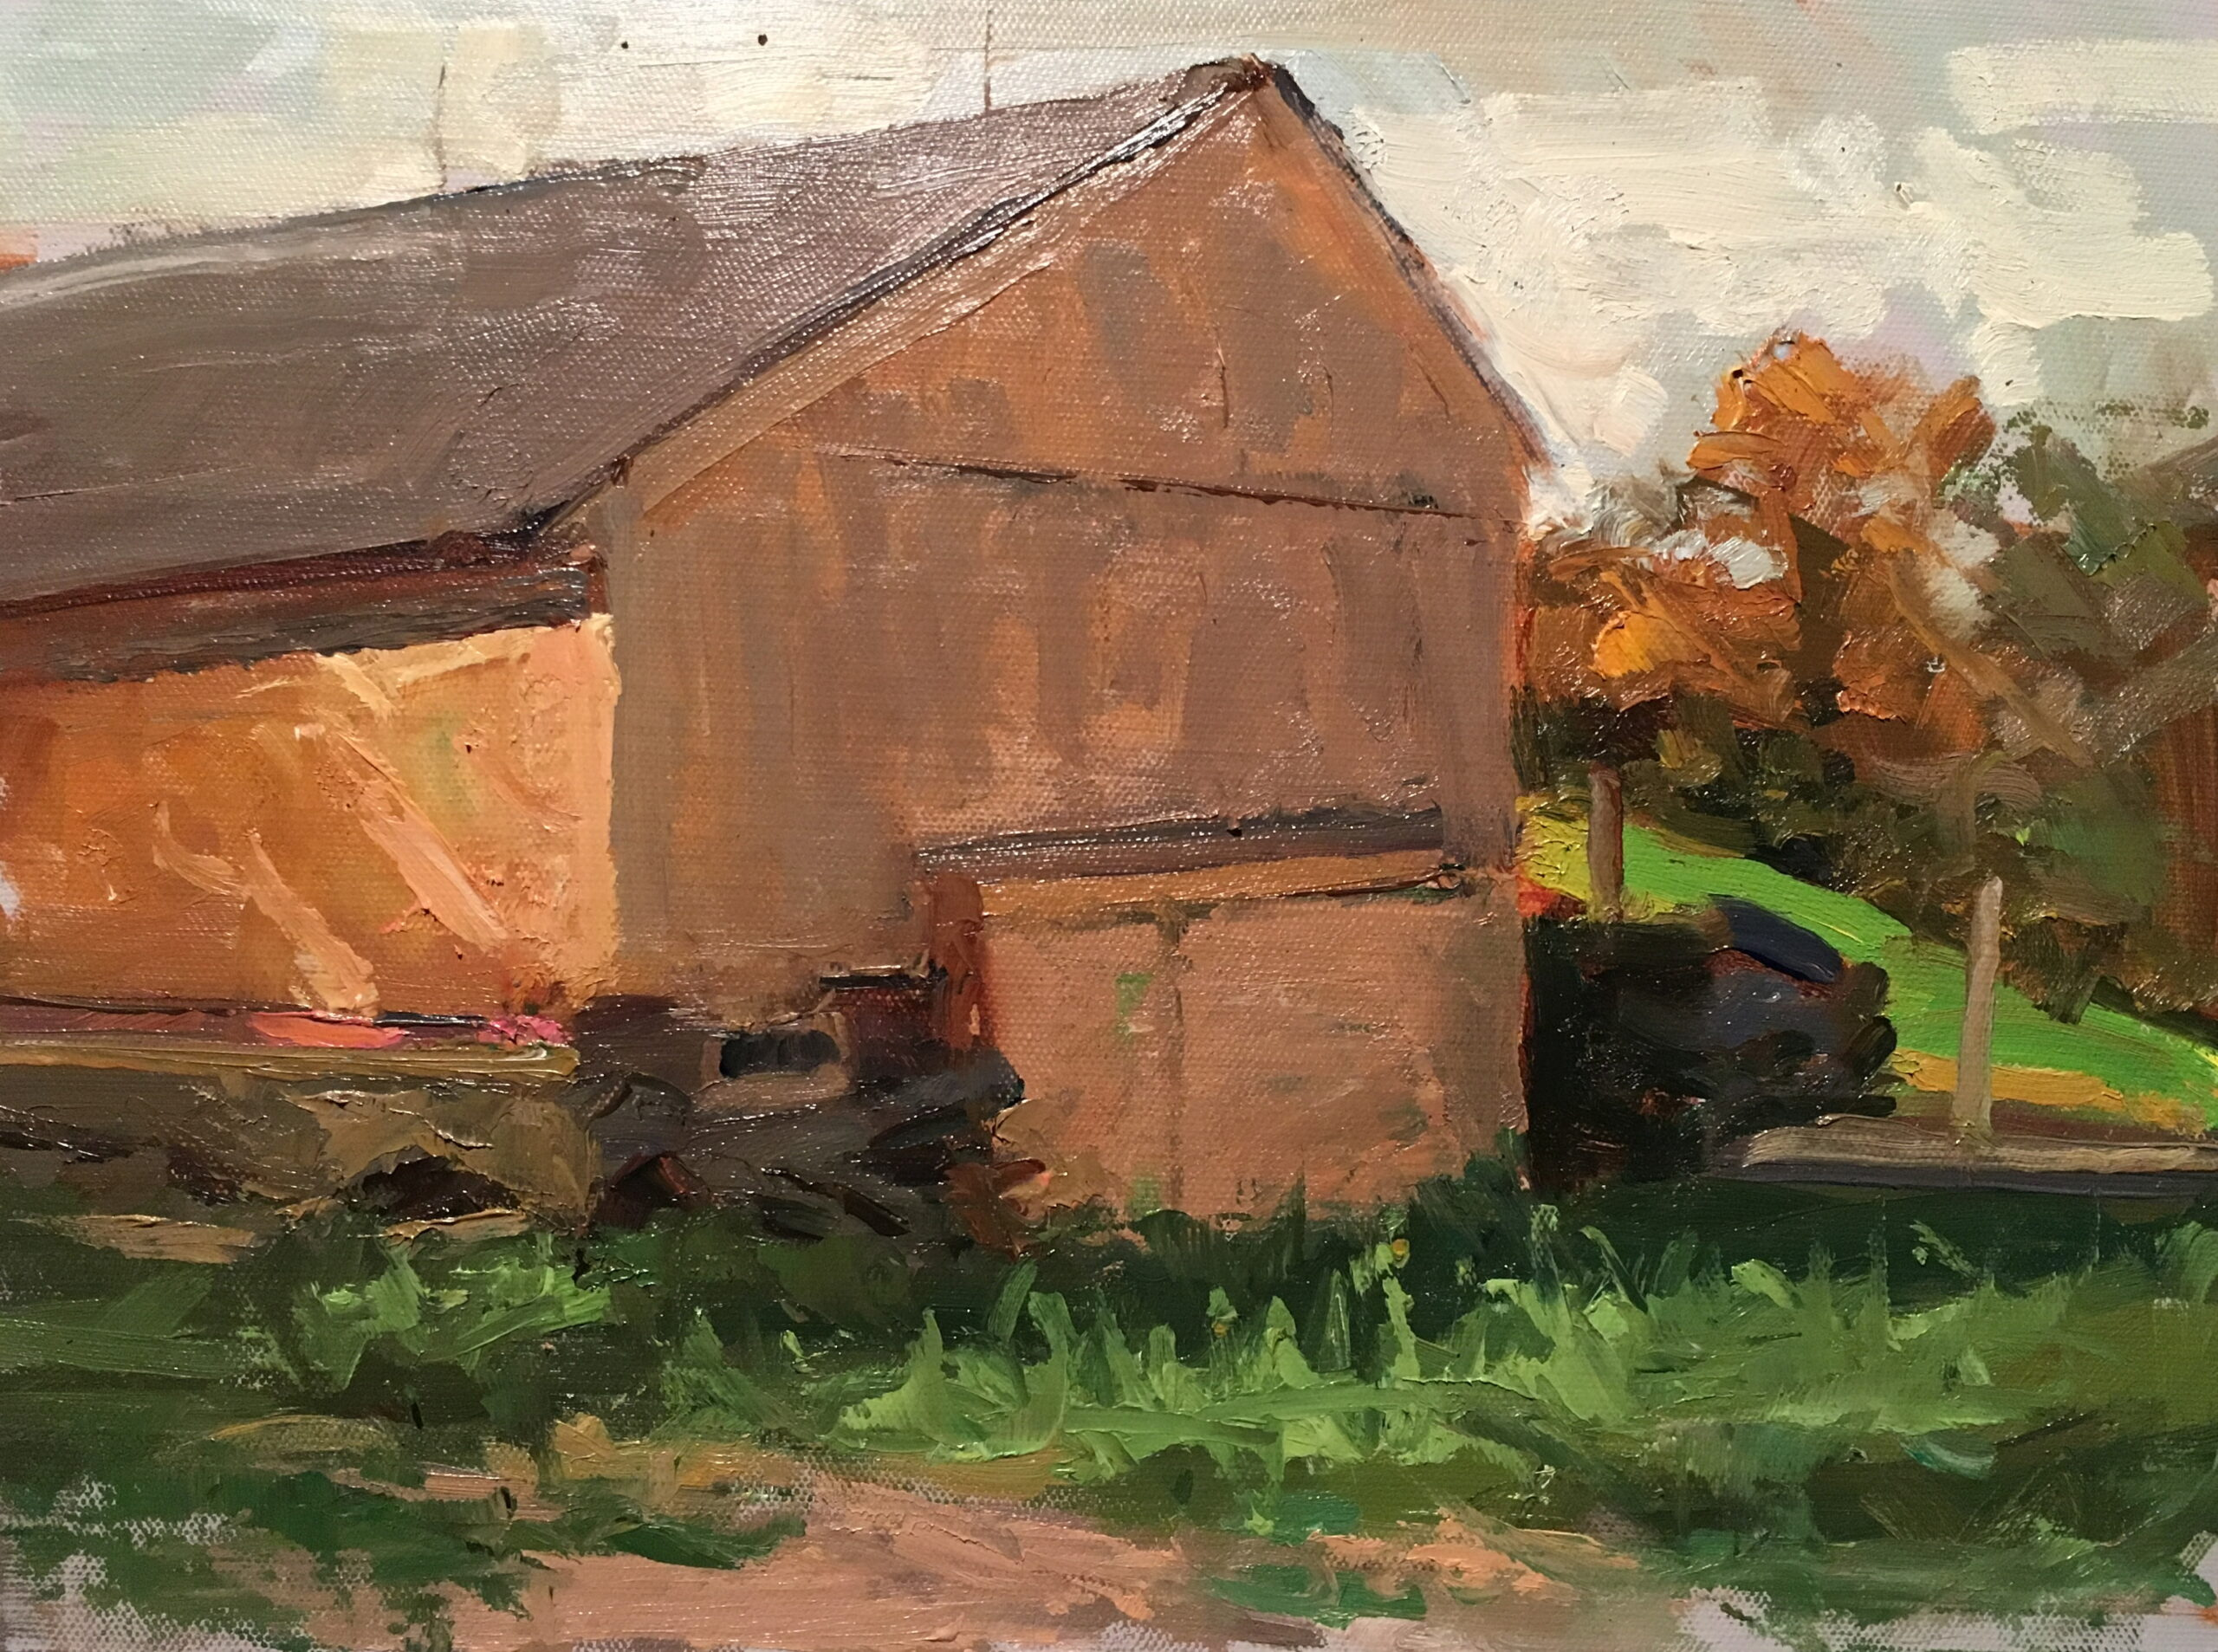 Yellow Barn, Oil on Canvas on Panel, 11 x 14 Inches, by Susan Grisell, $300